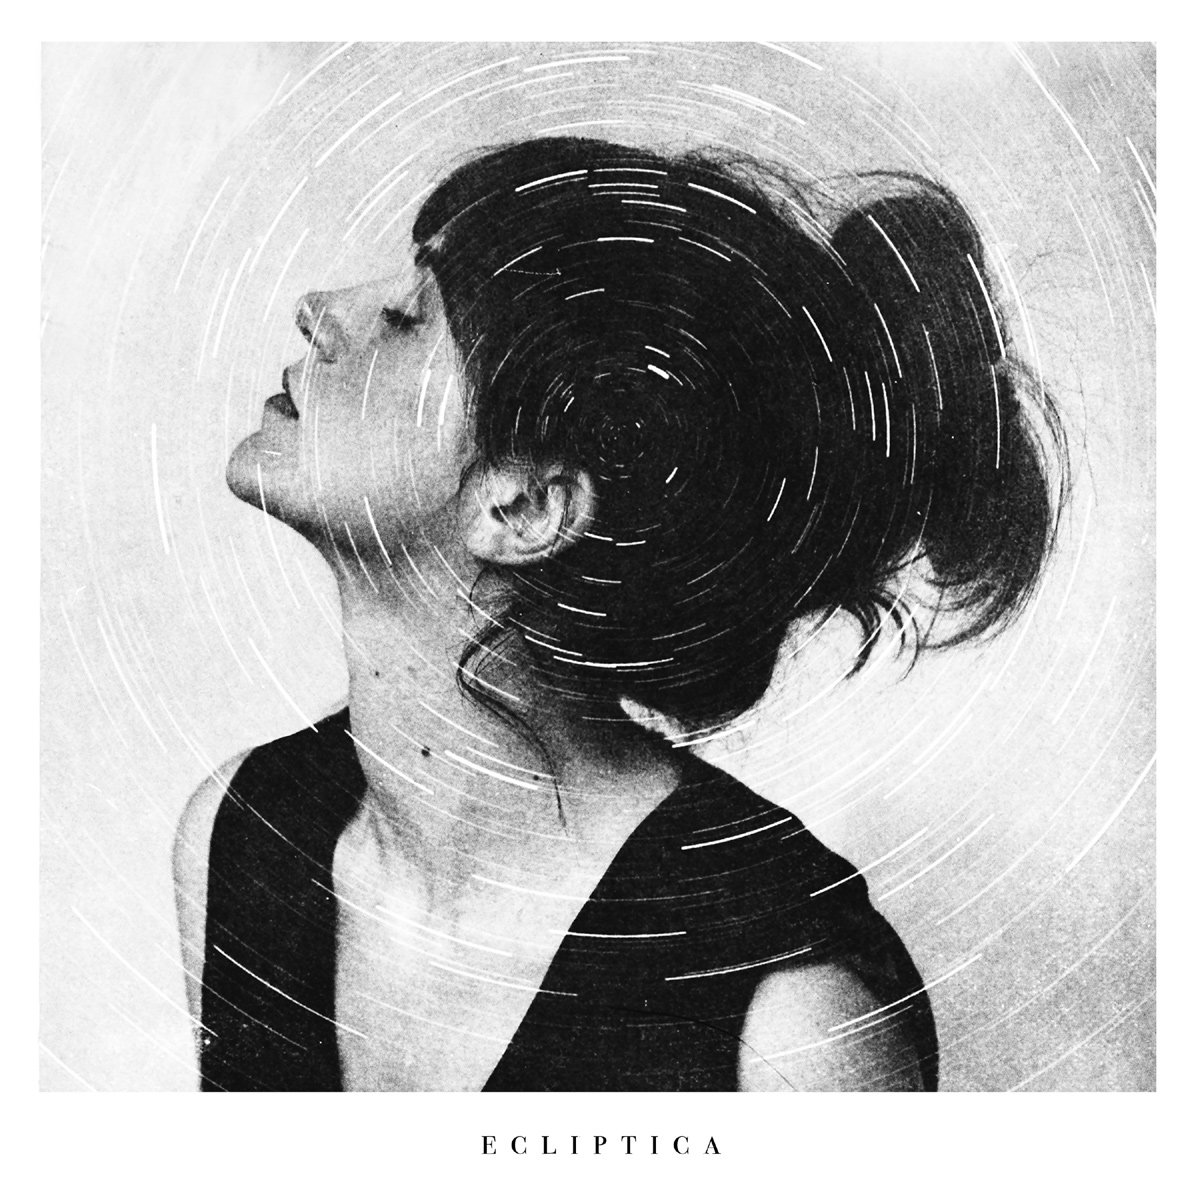 Ecliptica Lp : Maria Rodes: Amazon.es: Música